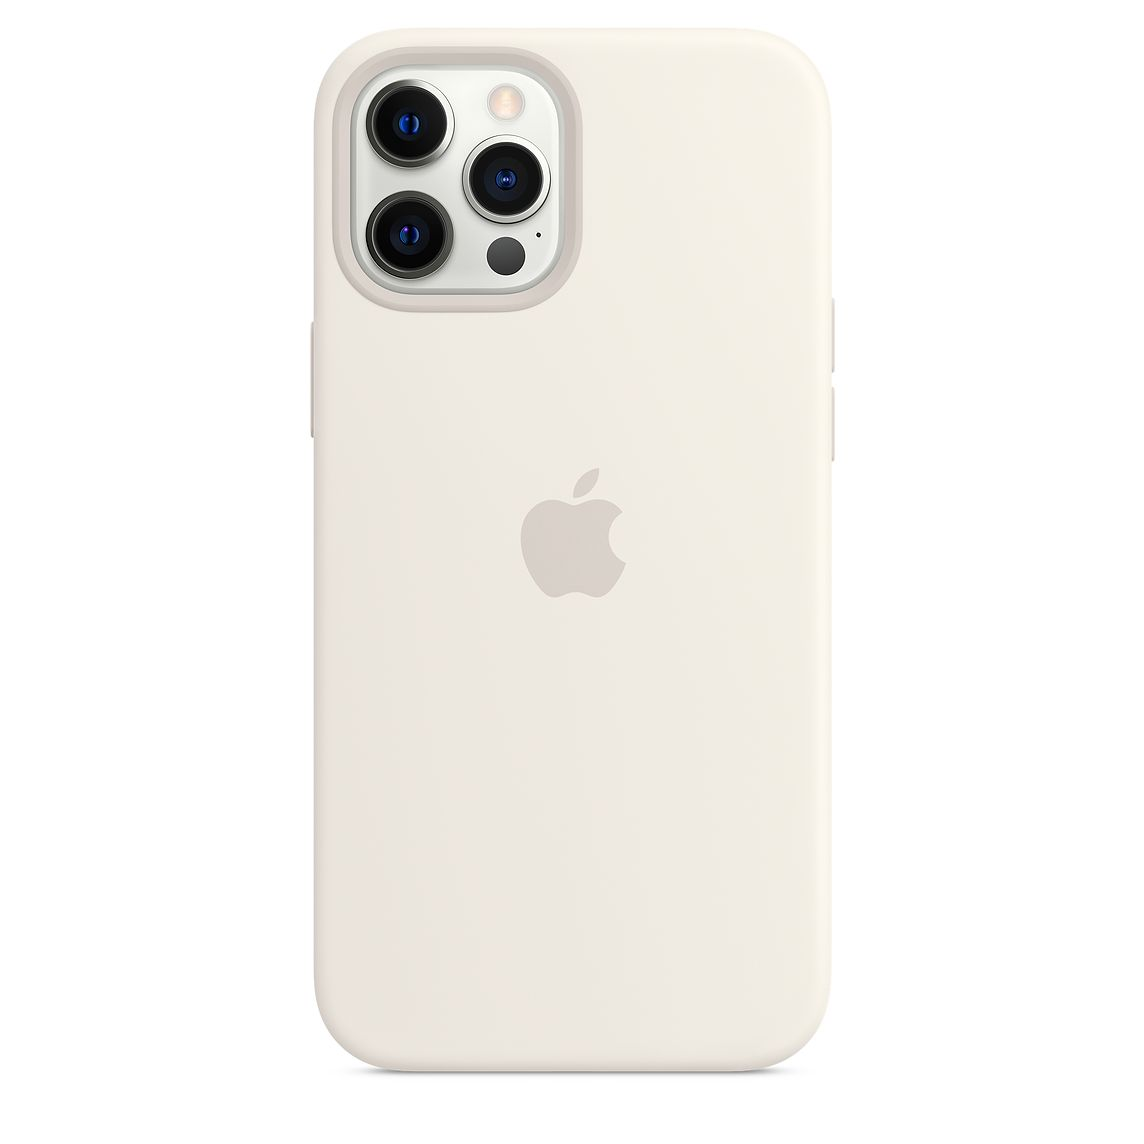 - iPhone 12 Pro Max Silicone Case with MagSafe / Blanco 3